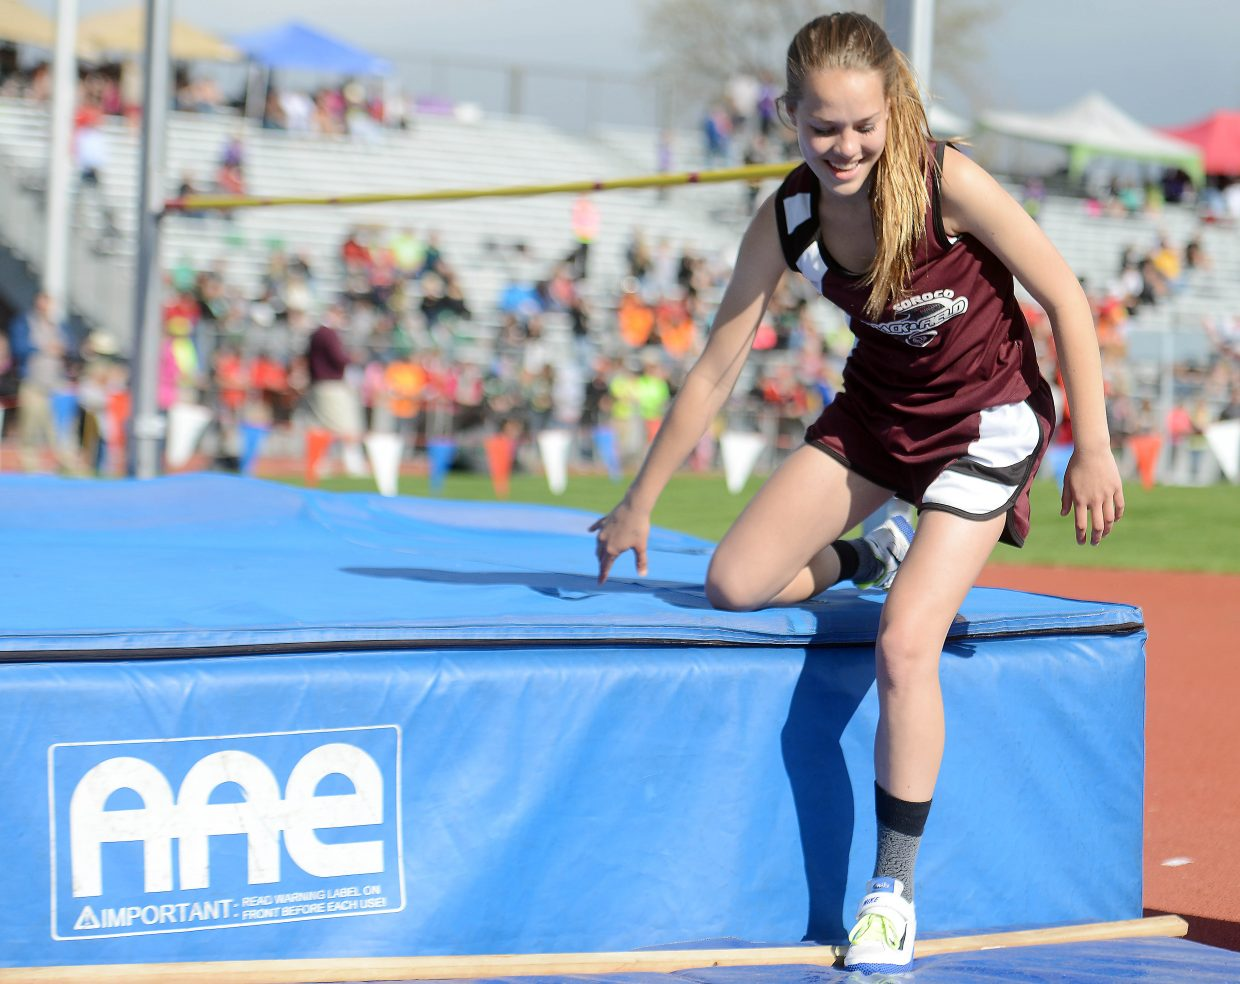 Kali Constine smiles wide after clearing the bar during Thursday's high jump competition at the state track meet.